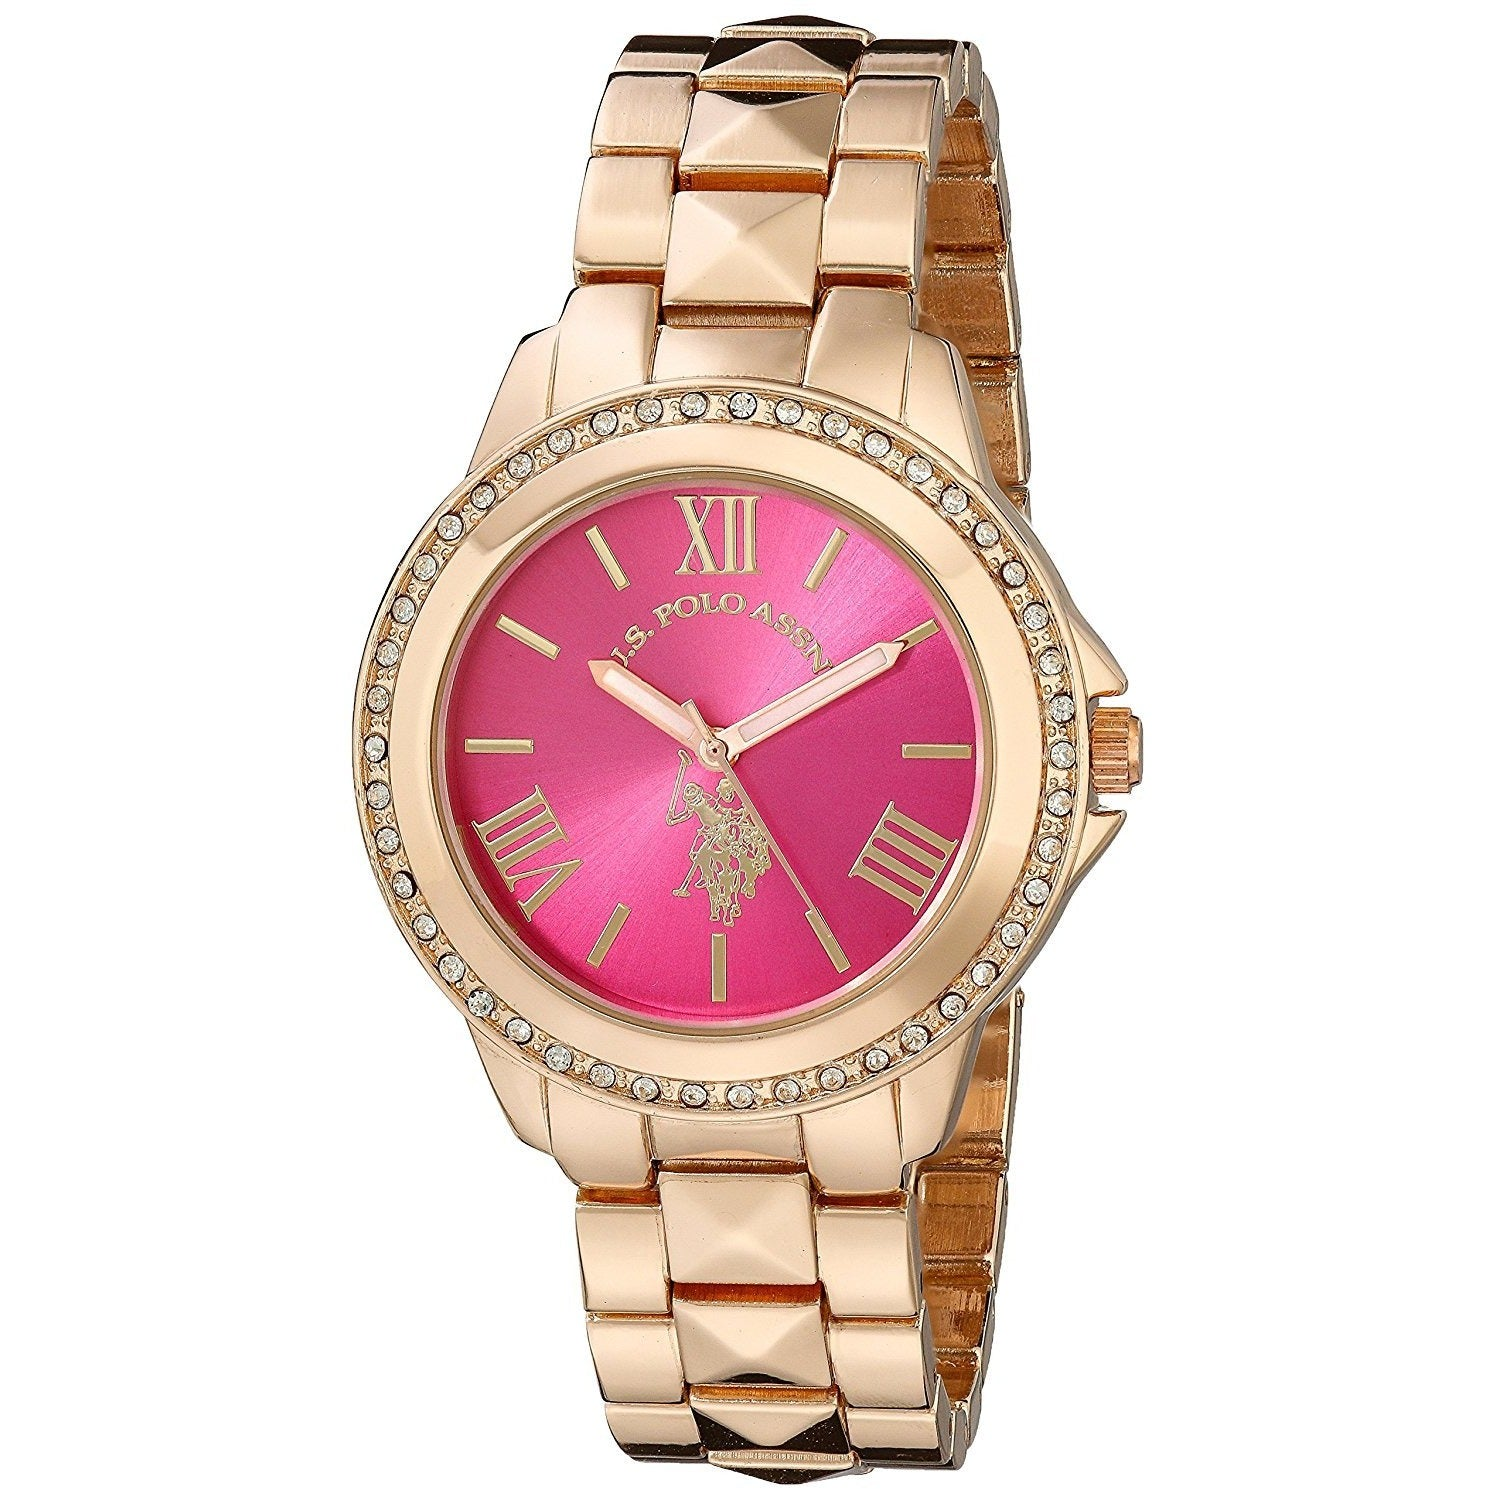 U.S. Polo Assn. Women's USC40080 Rose Gold-Tone Bracelet Watch